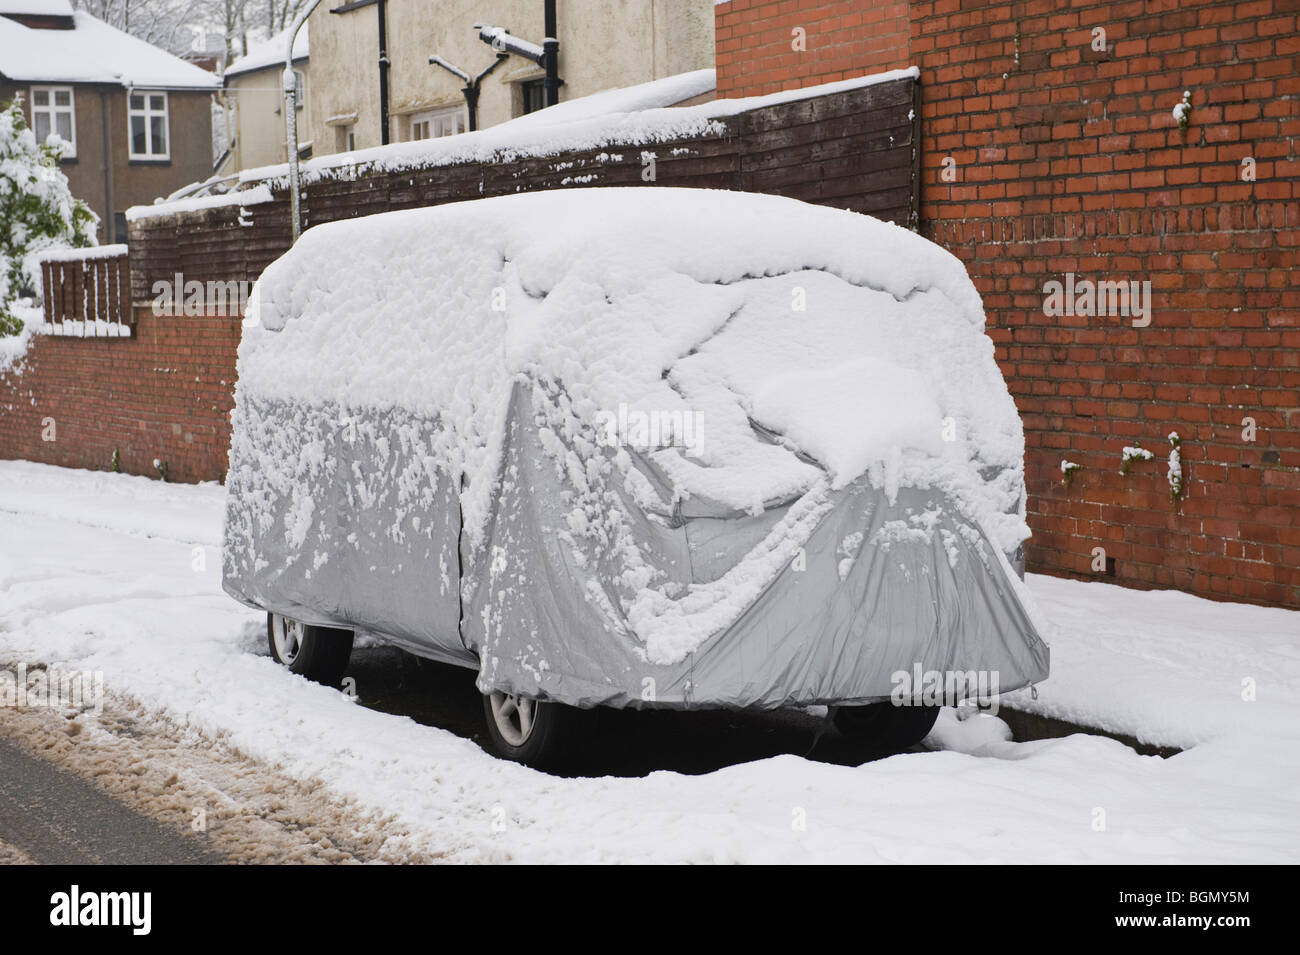 VW camper van with protective cover covered in snow at Newport South Wales UK - Stock Image